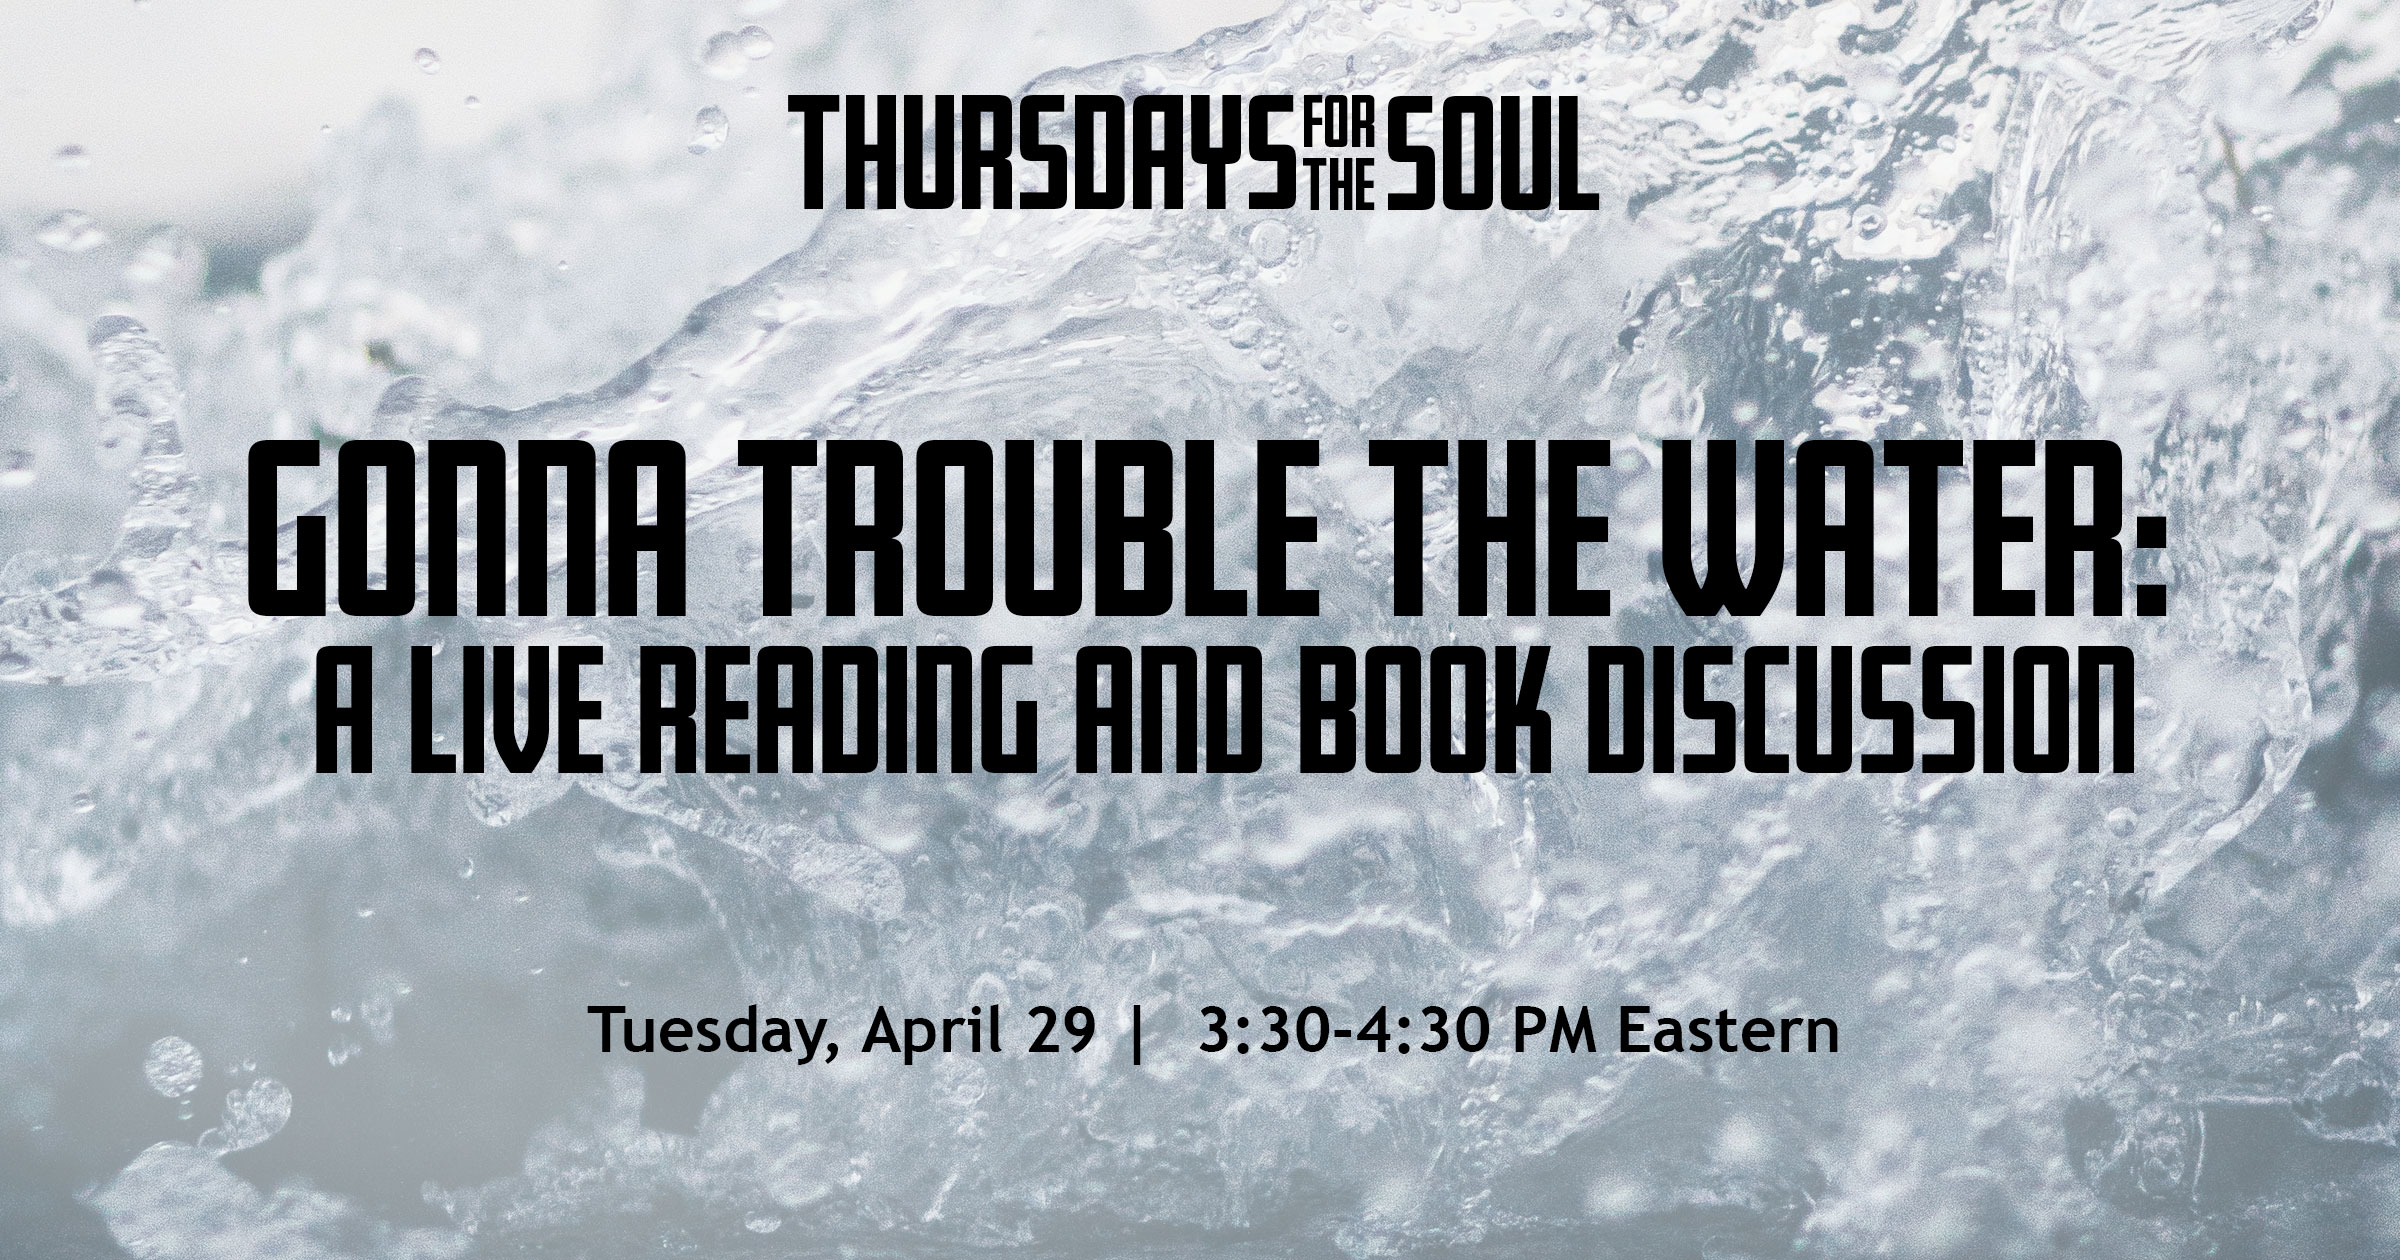 Thursdays for the Soul. Gonna trouble the water: A live reading and book discussion. Thursday, April 29. 3:30-4:30 PM Eastern